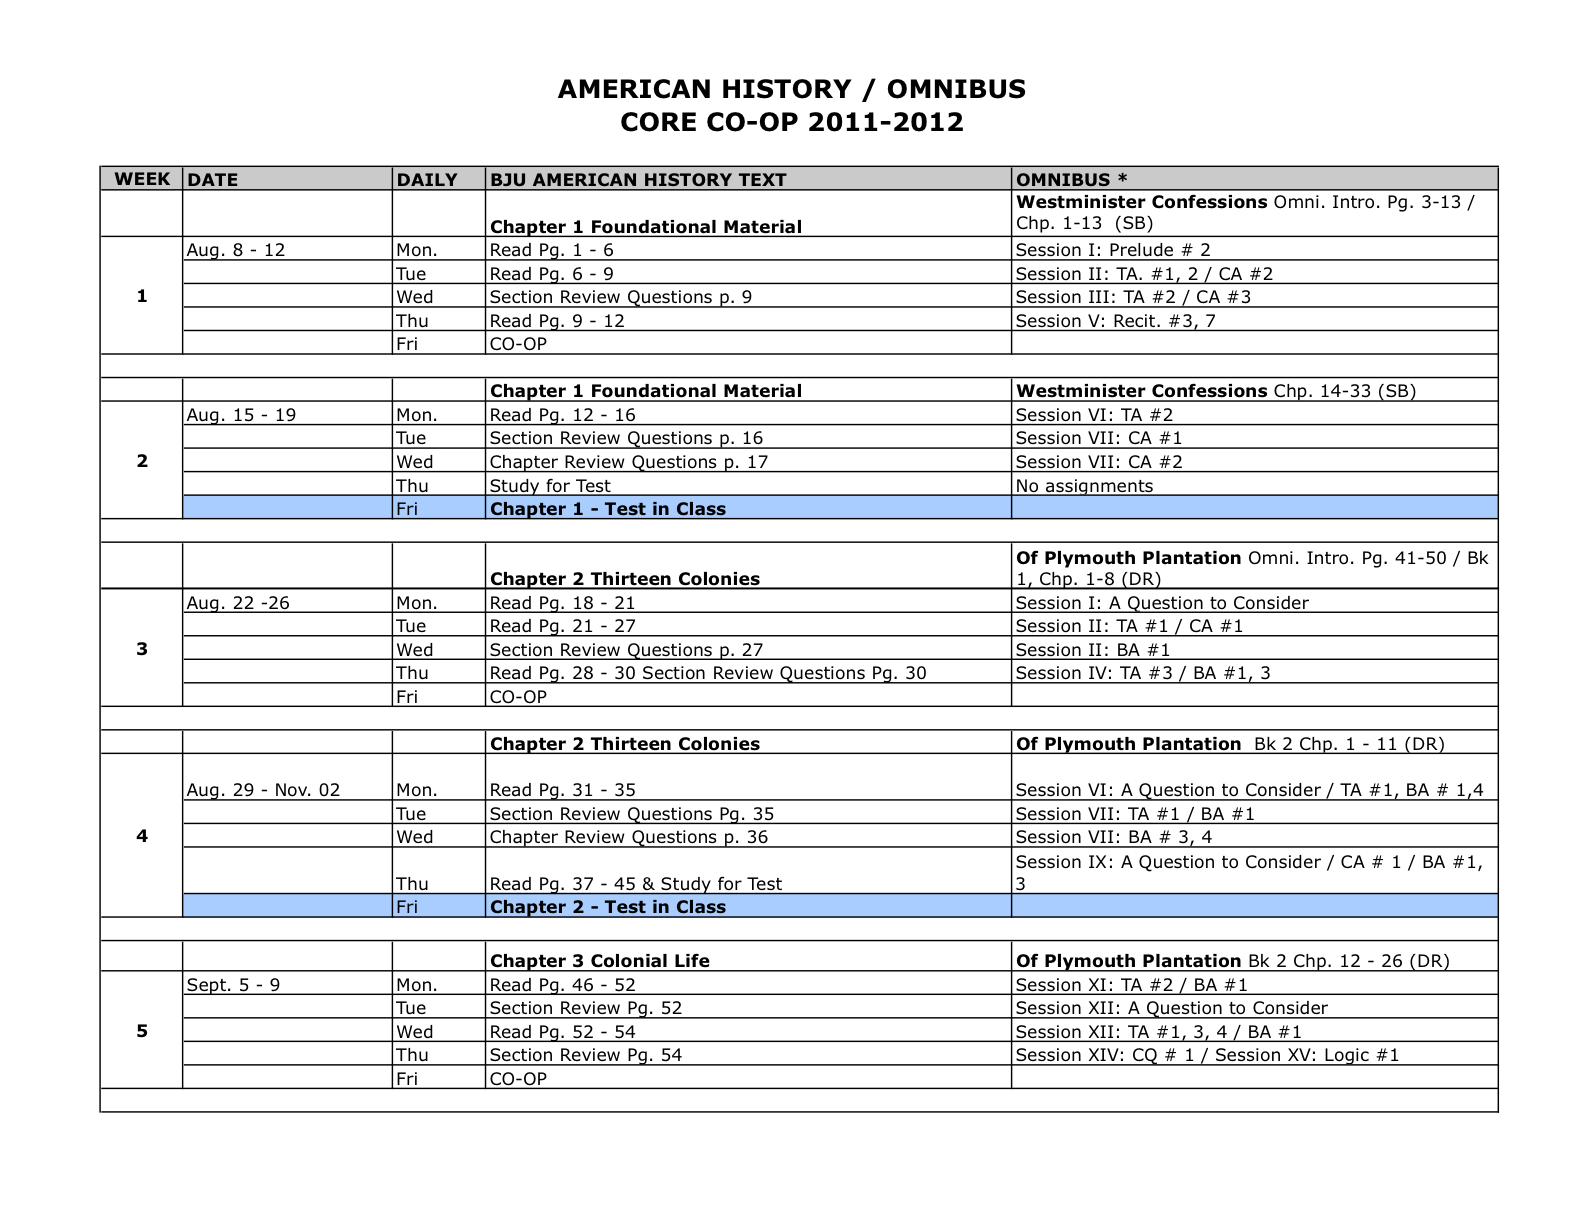 american history syllabus Posts about syllabus written by andrew mcgregor and andrewdlinden.